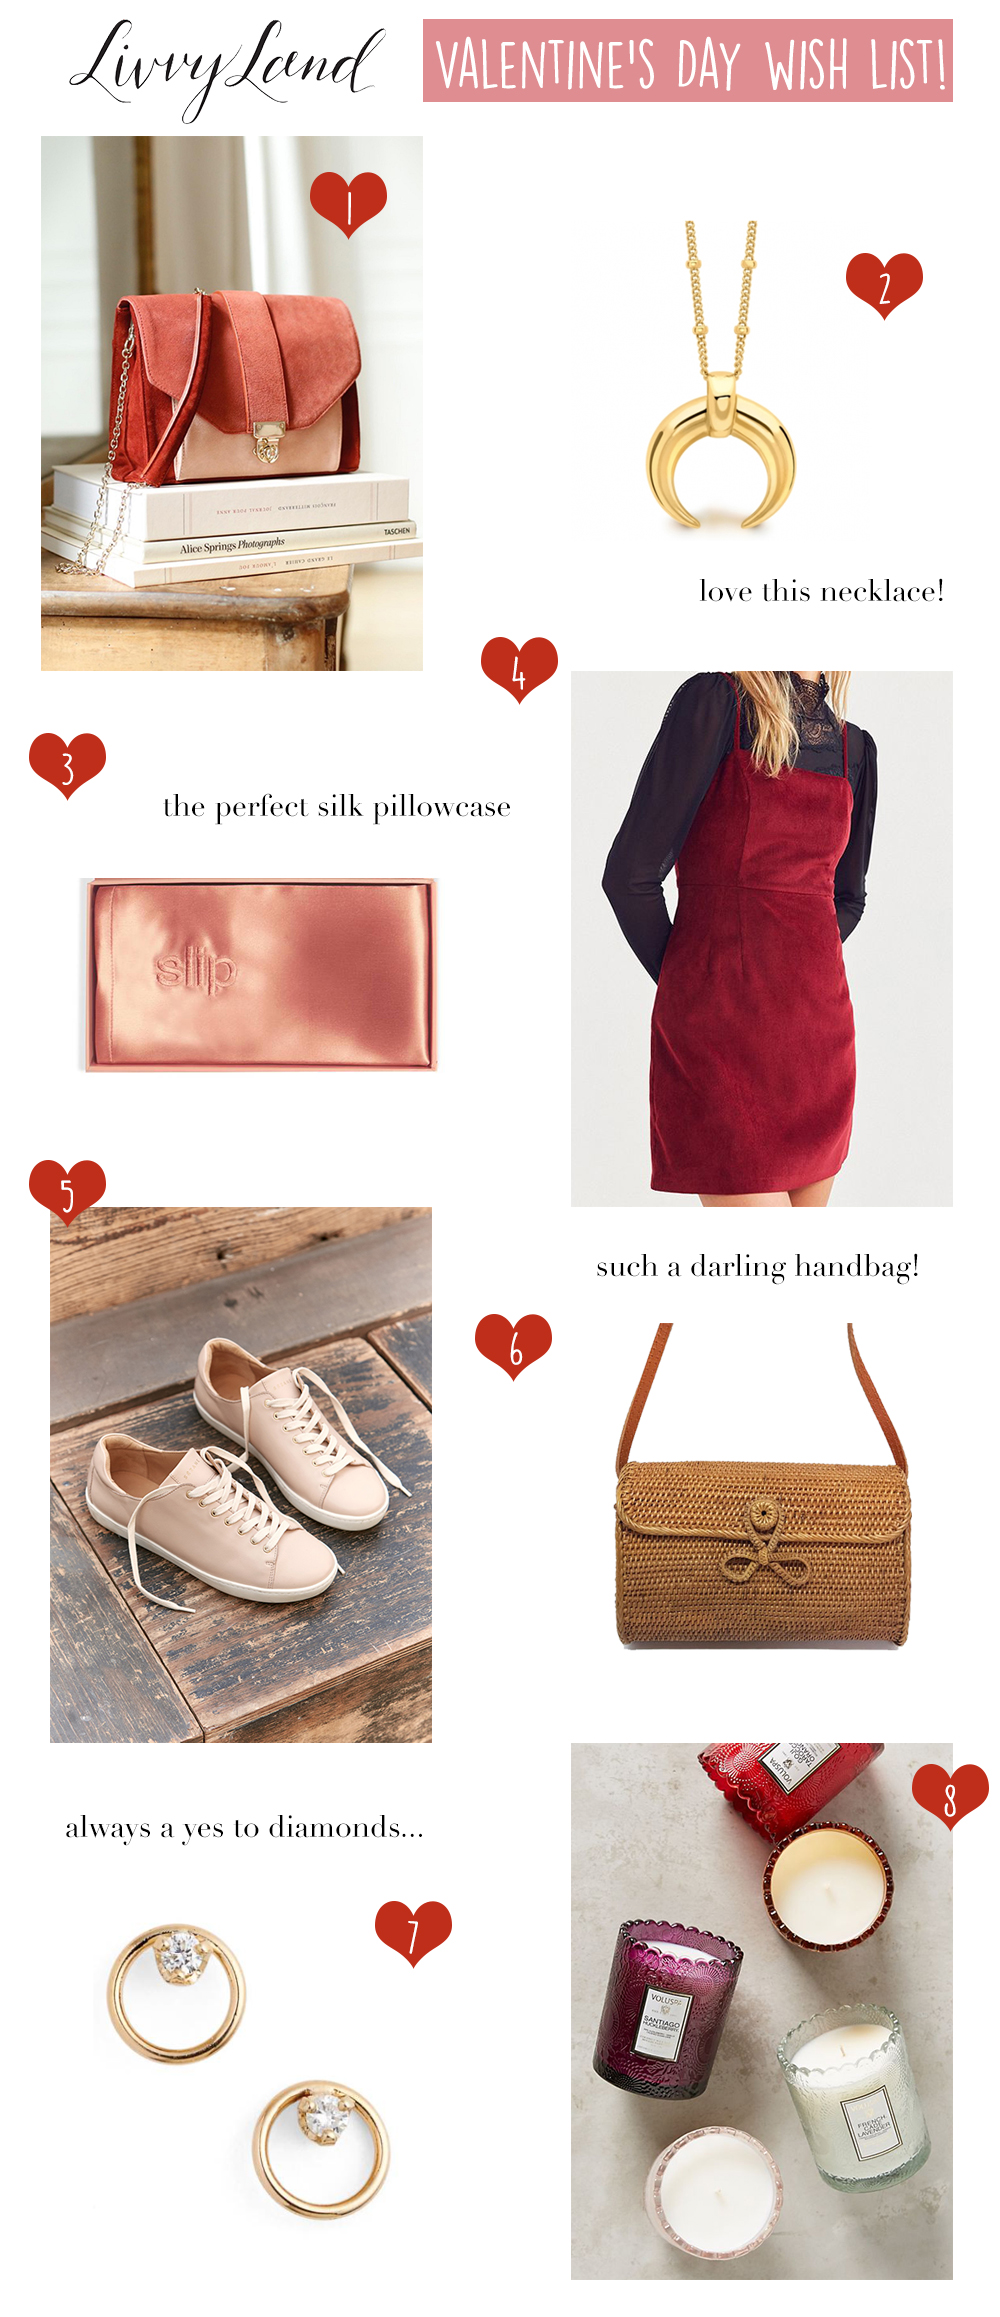 livvyland-valentines-day-gift-guide-girls-my-wish-list